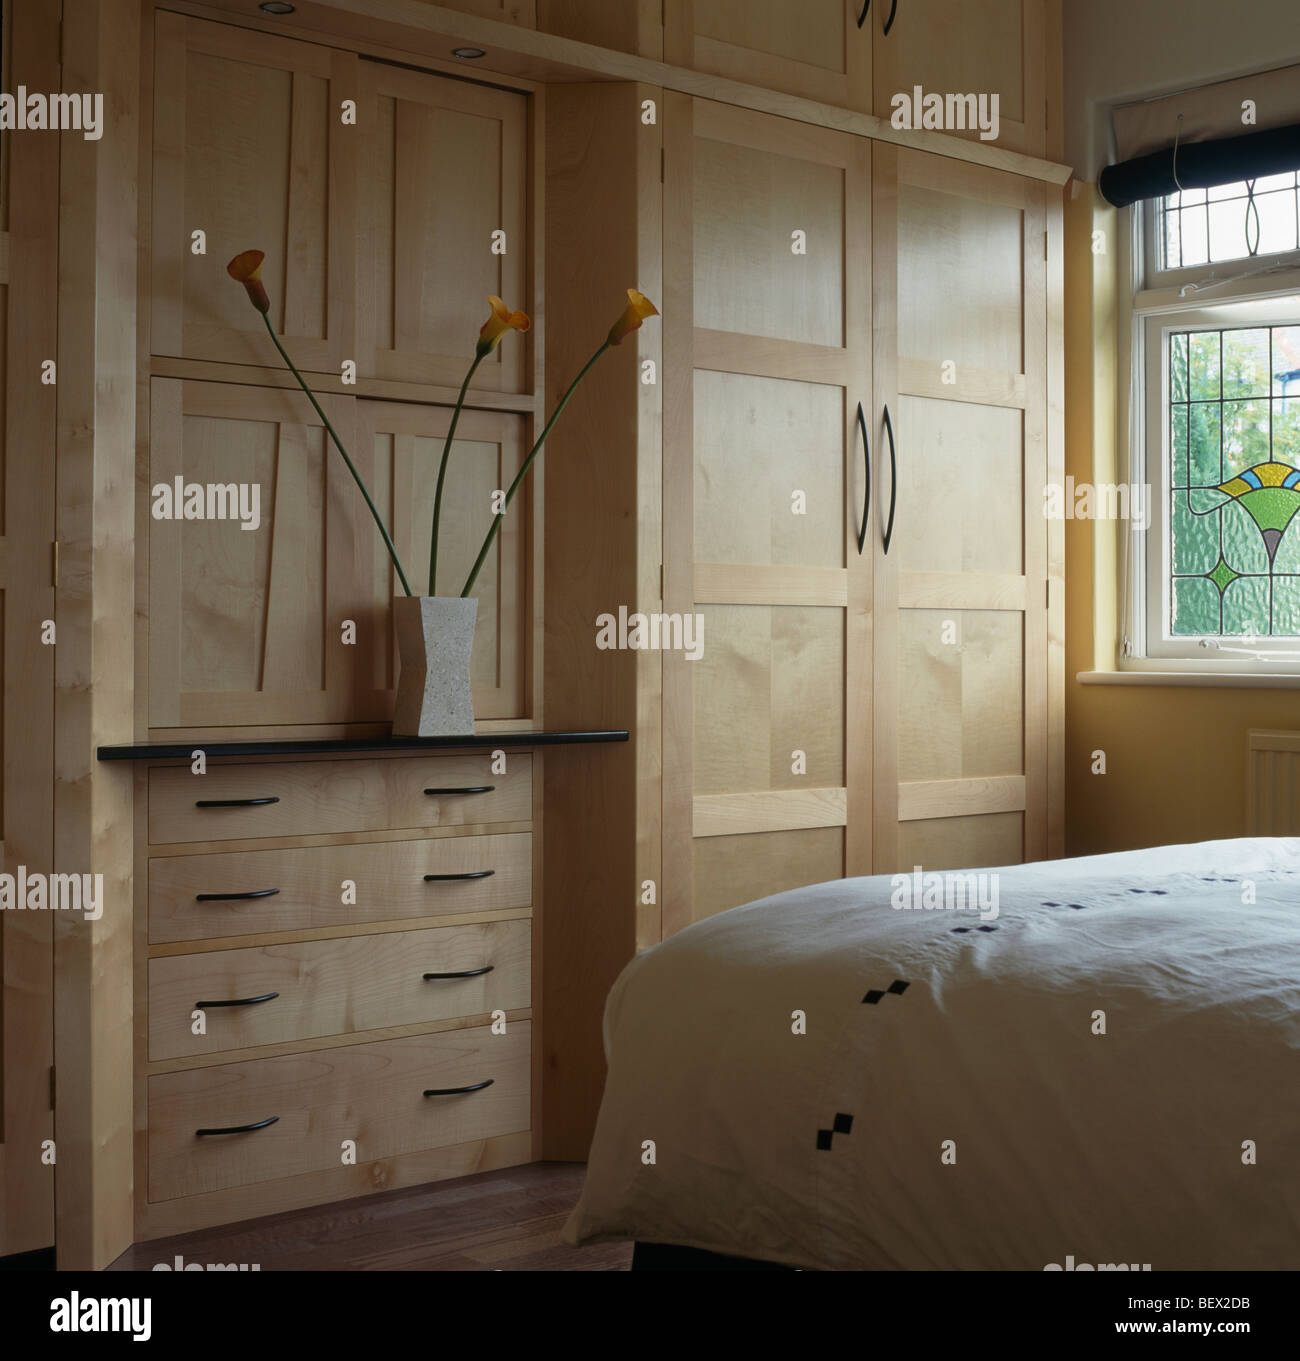 Fitted Wardrobes Stock Photos & Fitted Wardrobes Stock Images